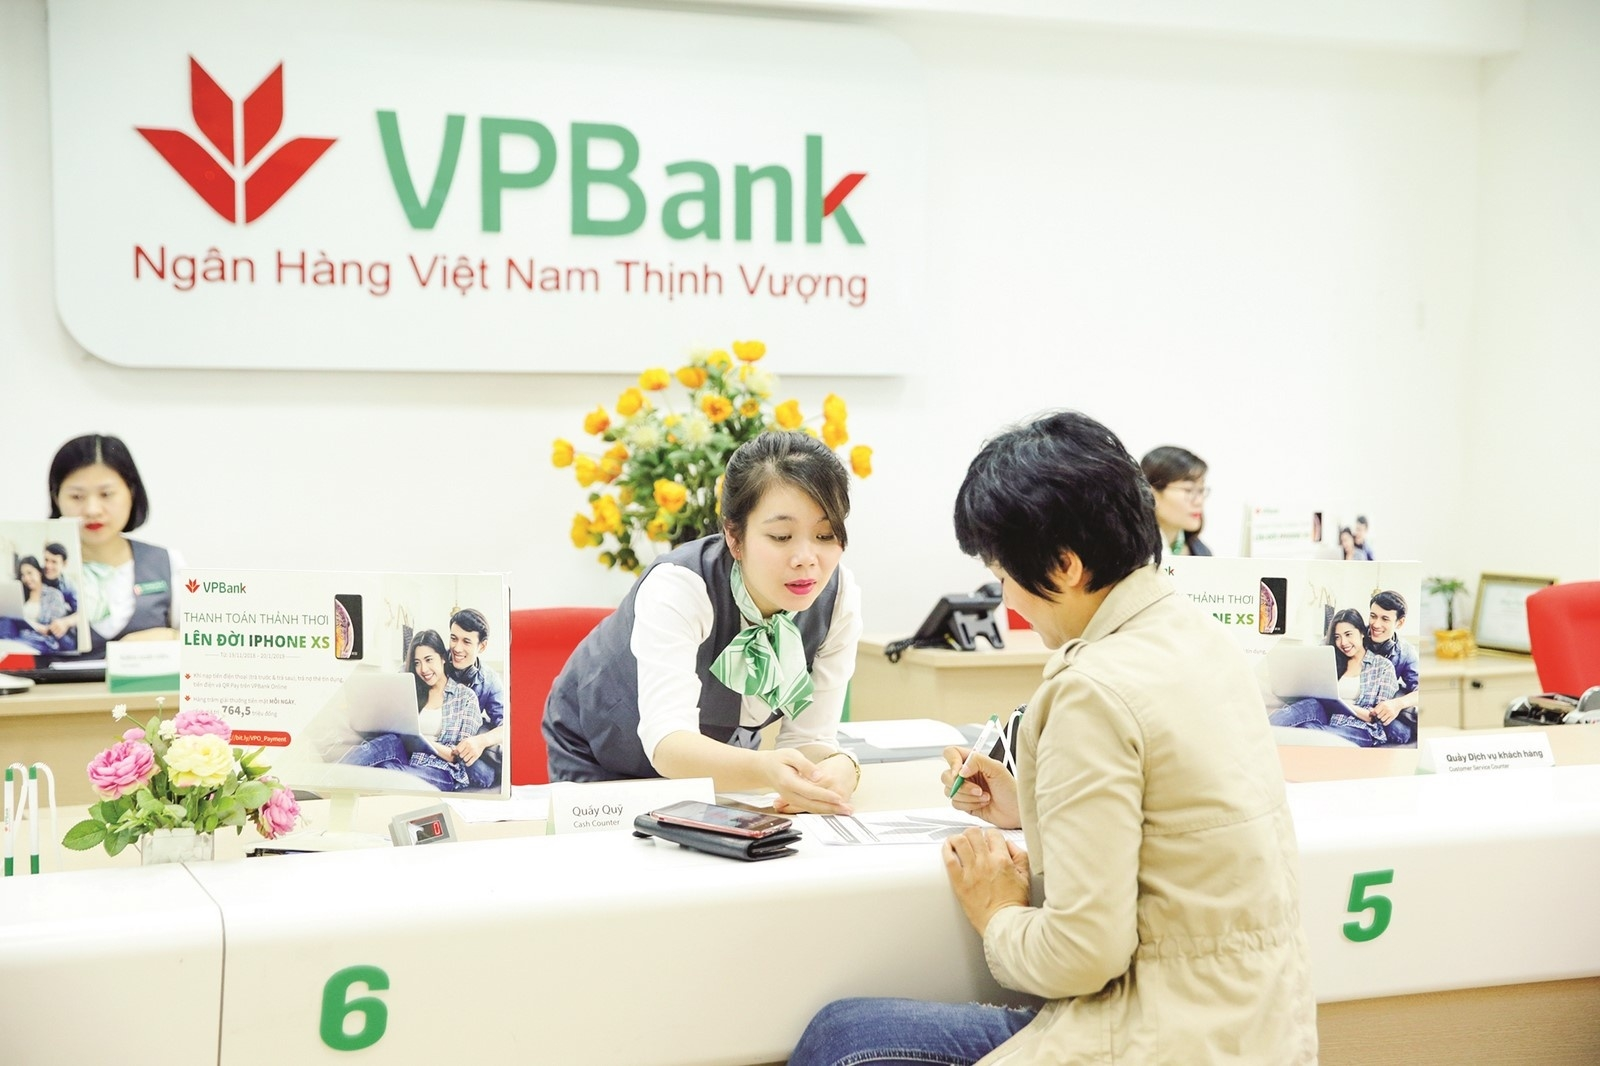 VPBank to issue additional shares and increase charter capital to nearly $2 billion